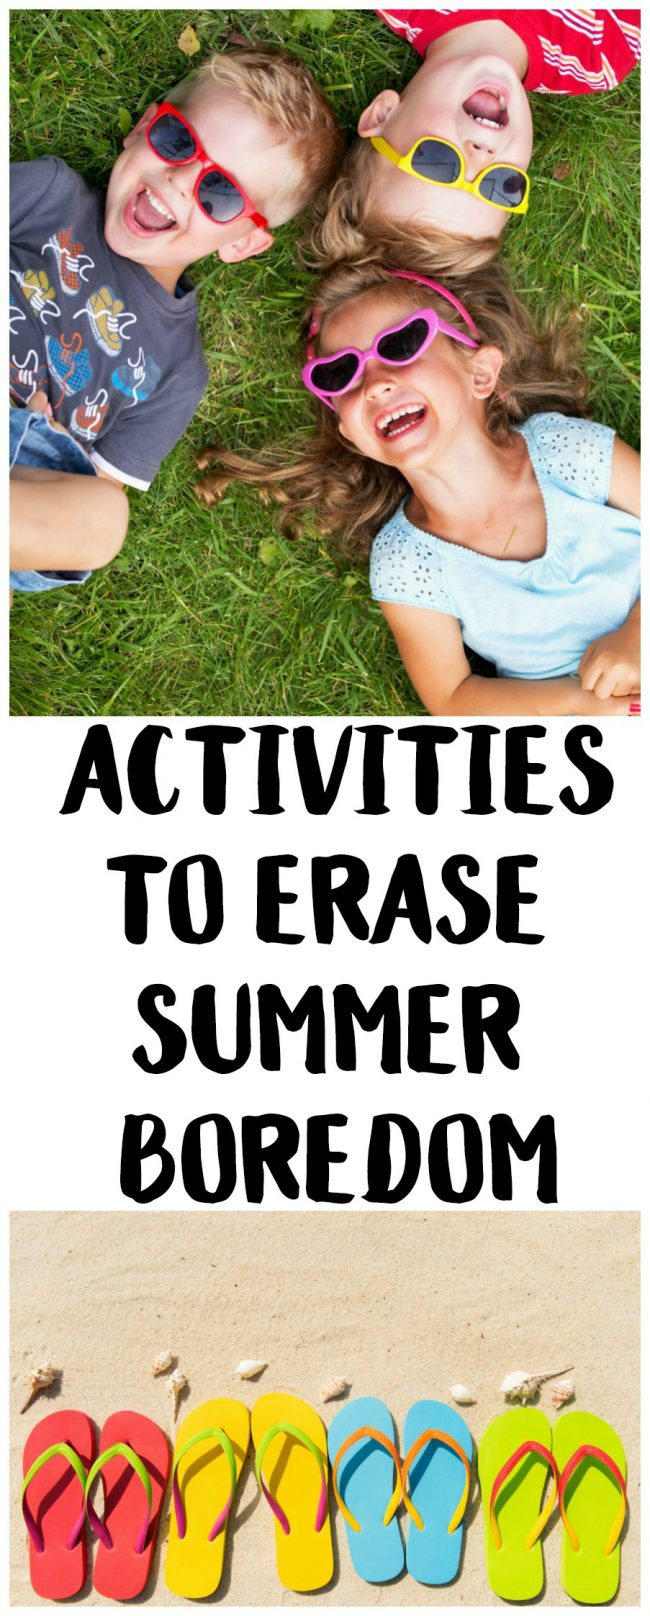 Bored kids at home? These fun summer activities will change that! There's something for everyone, from DIY ideas to cheap excursions. Perfect for boys and girls, toddlers, kids, teenagers, and even adults to have fun this summer!